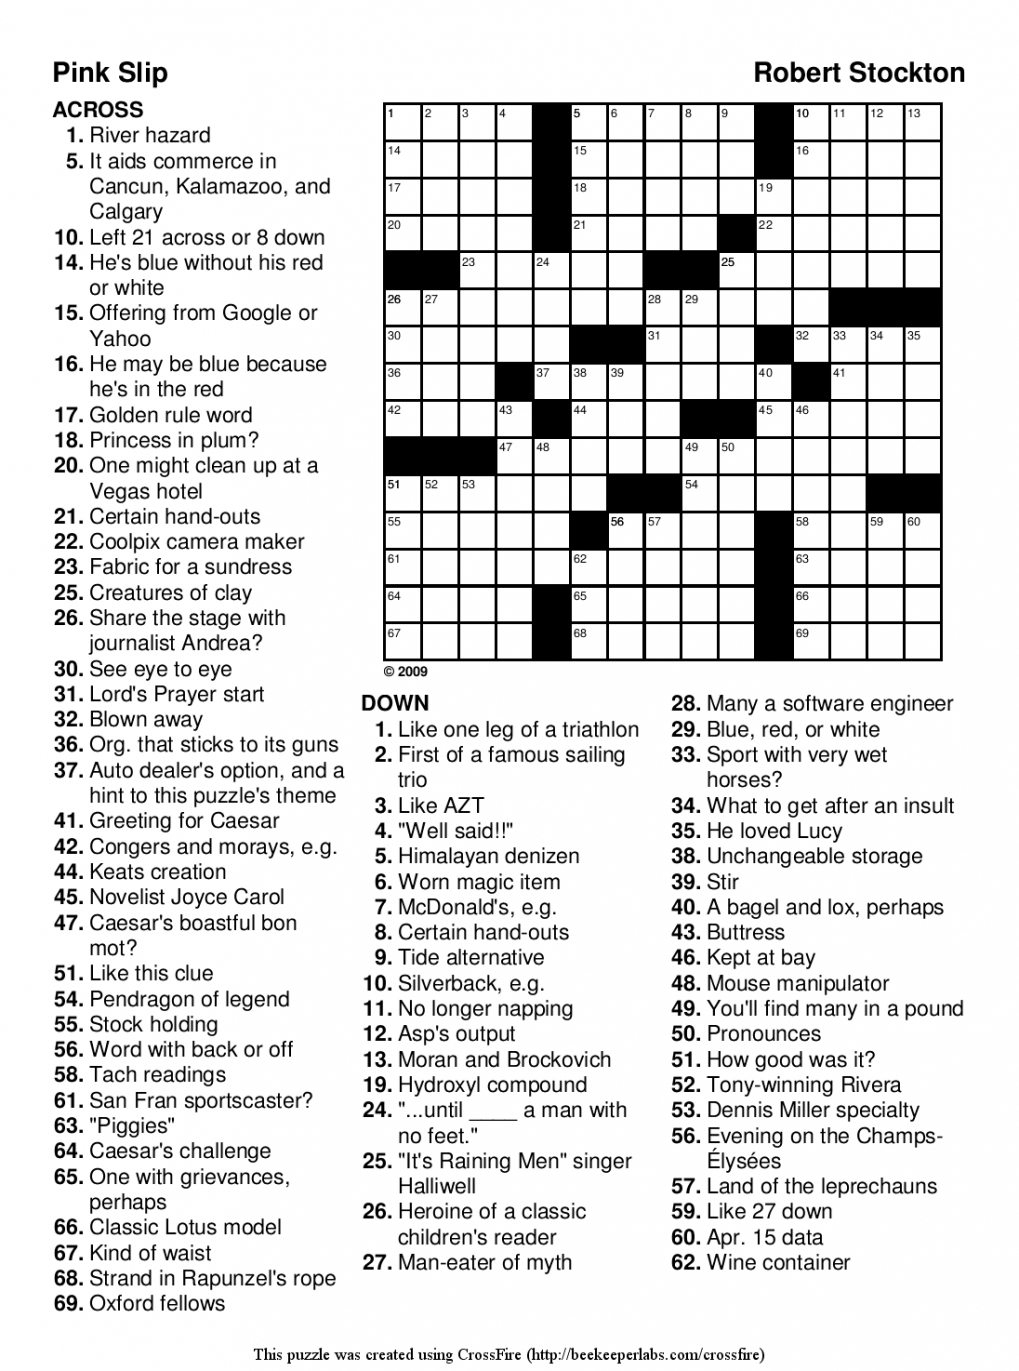 Easy Printable Crossword Puzzles For Kids | Penaime - Free Easy Printable Crossword Puzzles For Kids